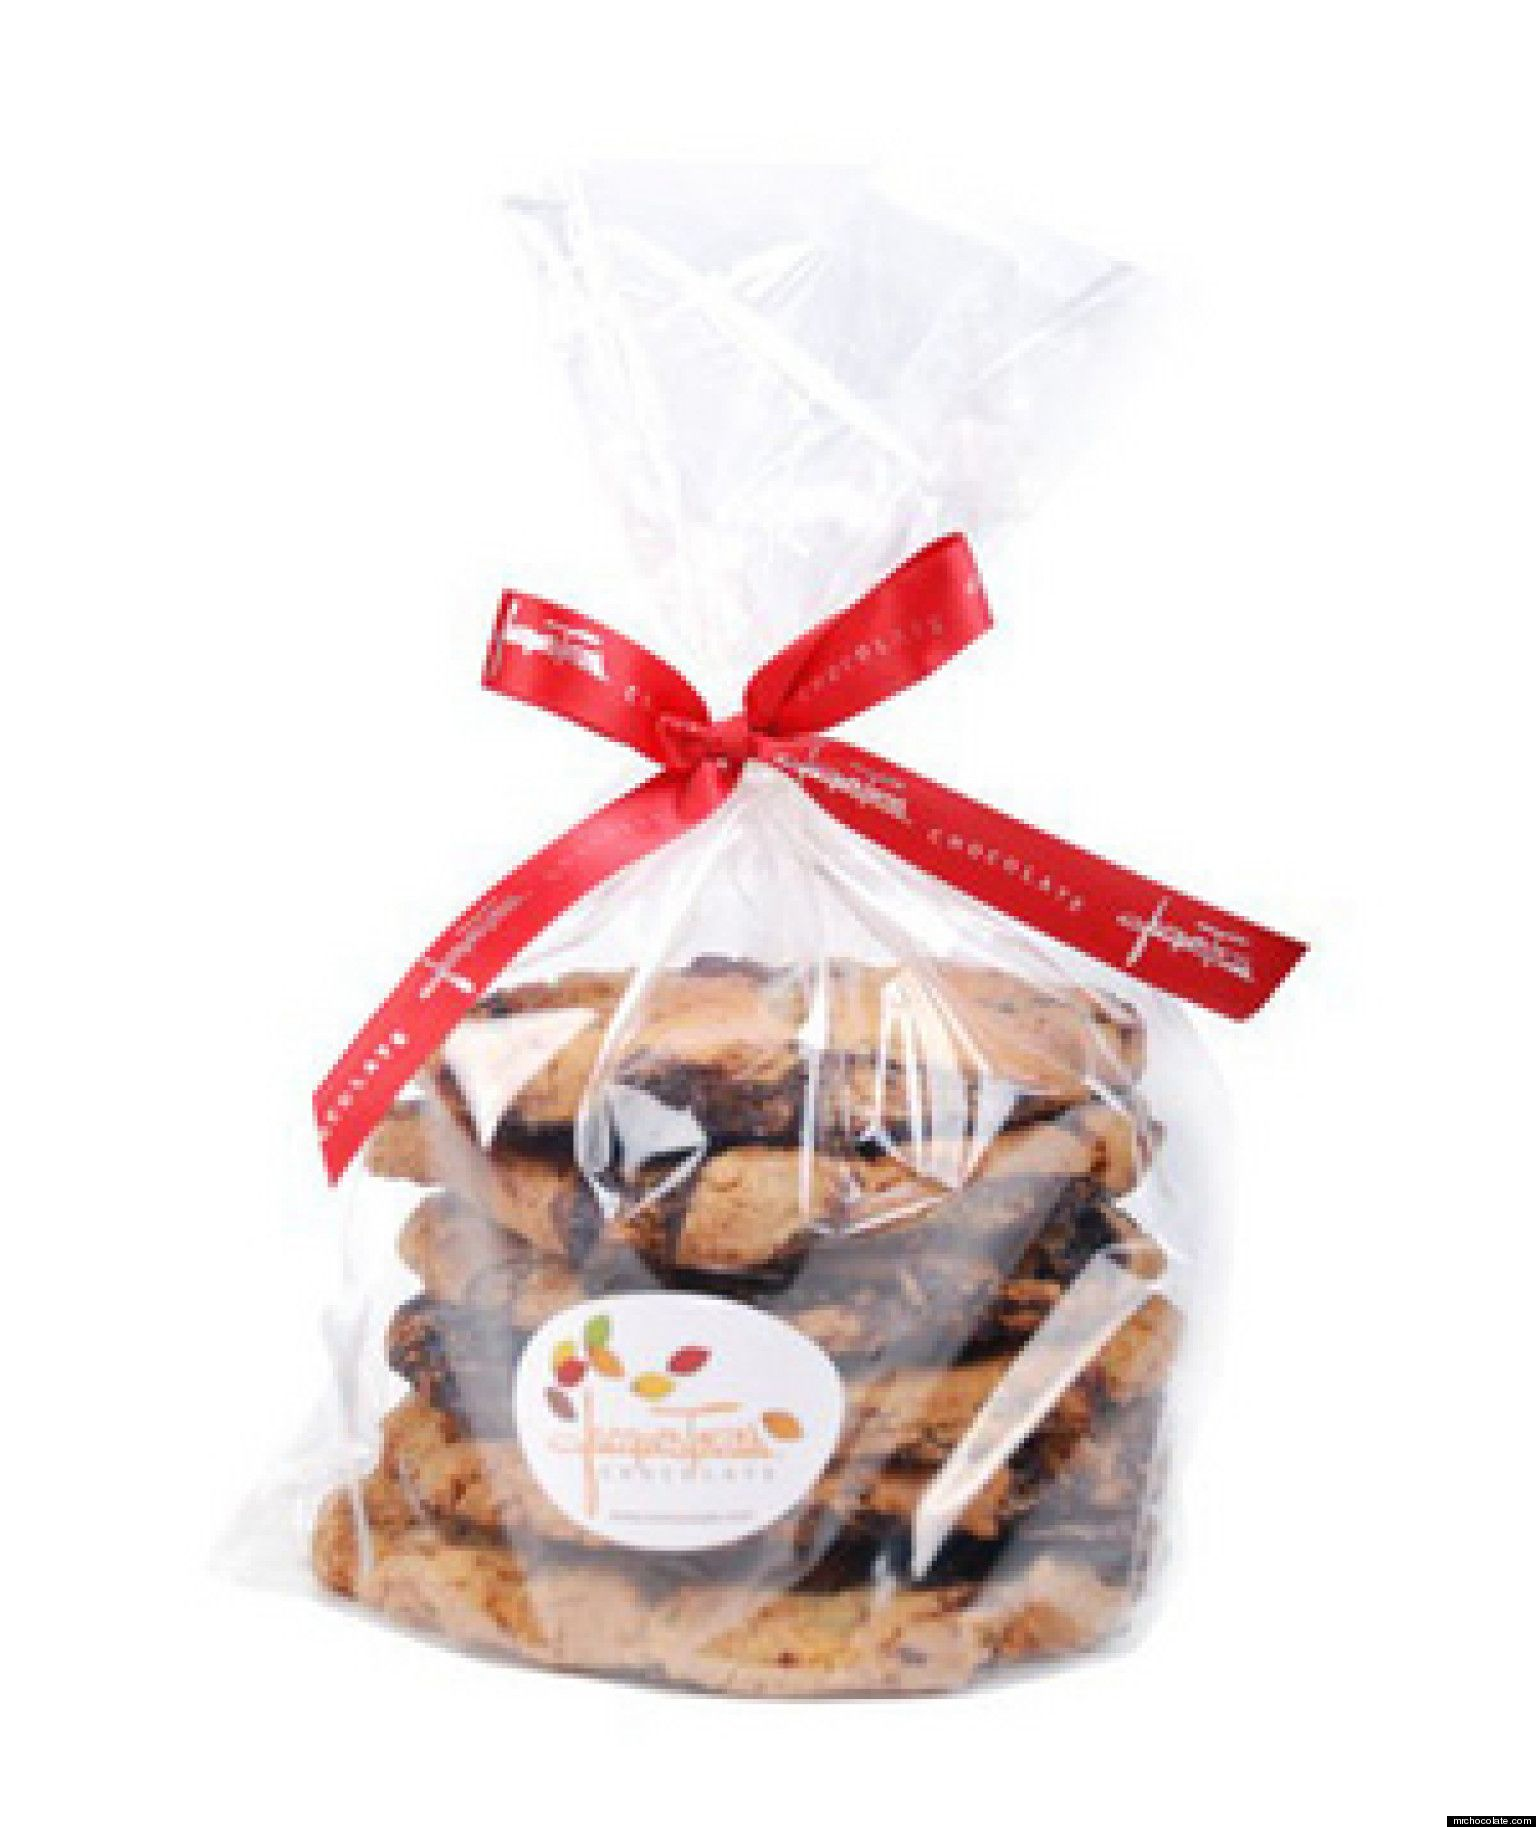 Pin on bakery gifts mail order